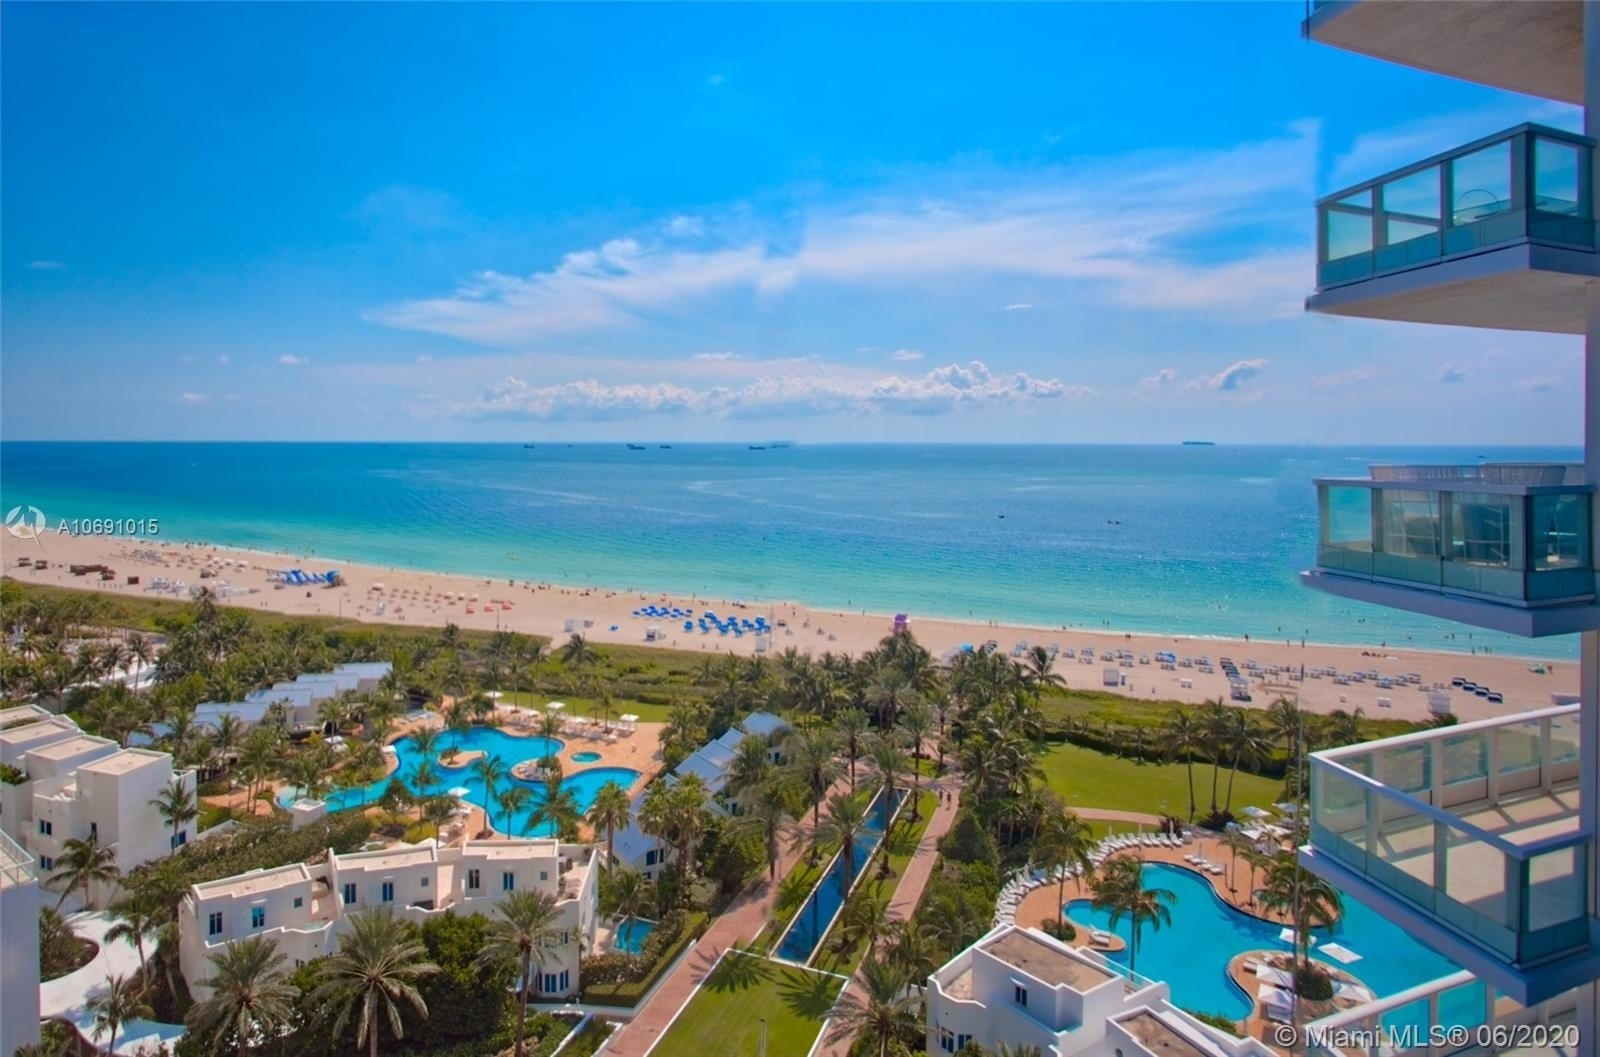 Property 在 100 S POINTE DR , 810 South Point, Miami Beach, FL 33139